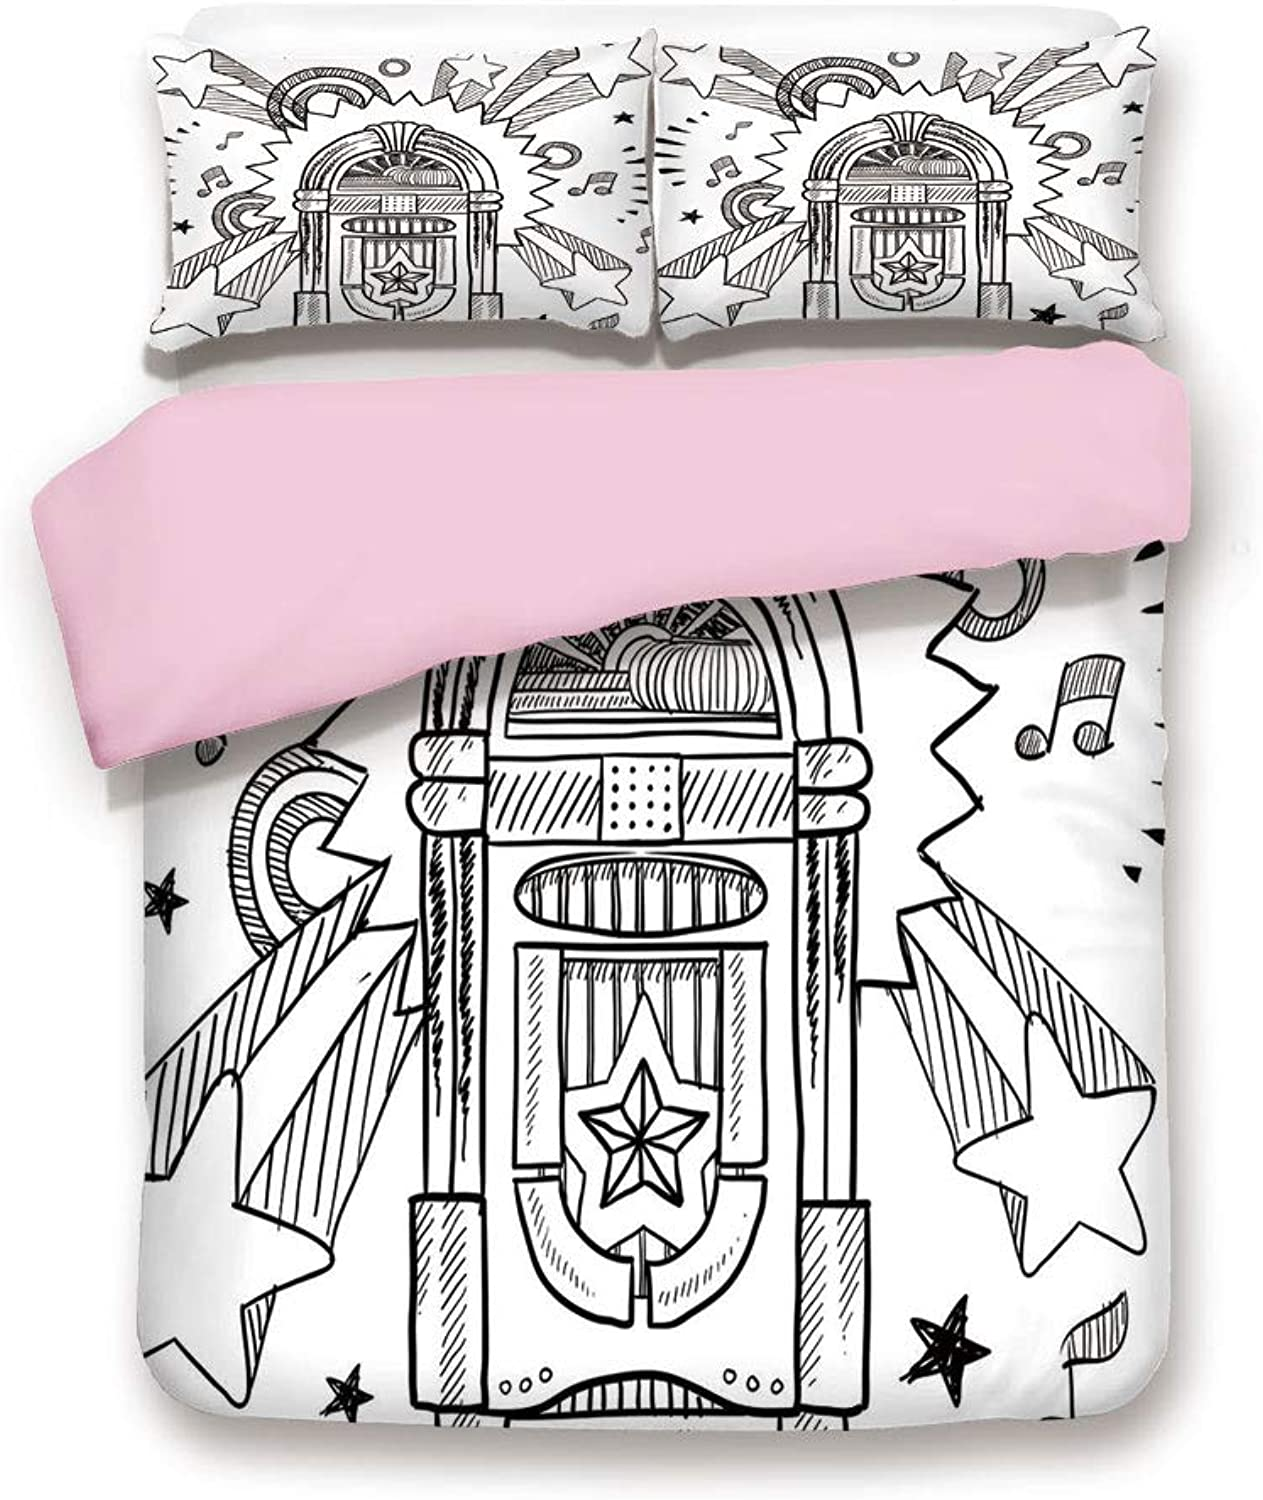 Pink Duvet Cover Set,Queen Size,Retro Vintage Cartoon Sketchy Style Radio Music Notes Box with Stars Image,Decorative 3 Piece Bedding Set with 2 Pillow Sham,Best Gift for Girls Women,Black and White